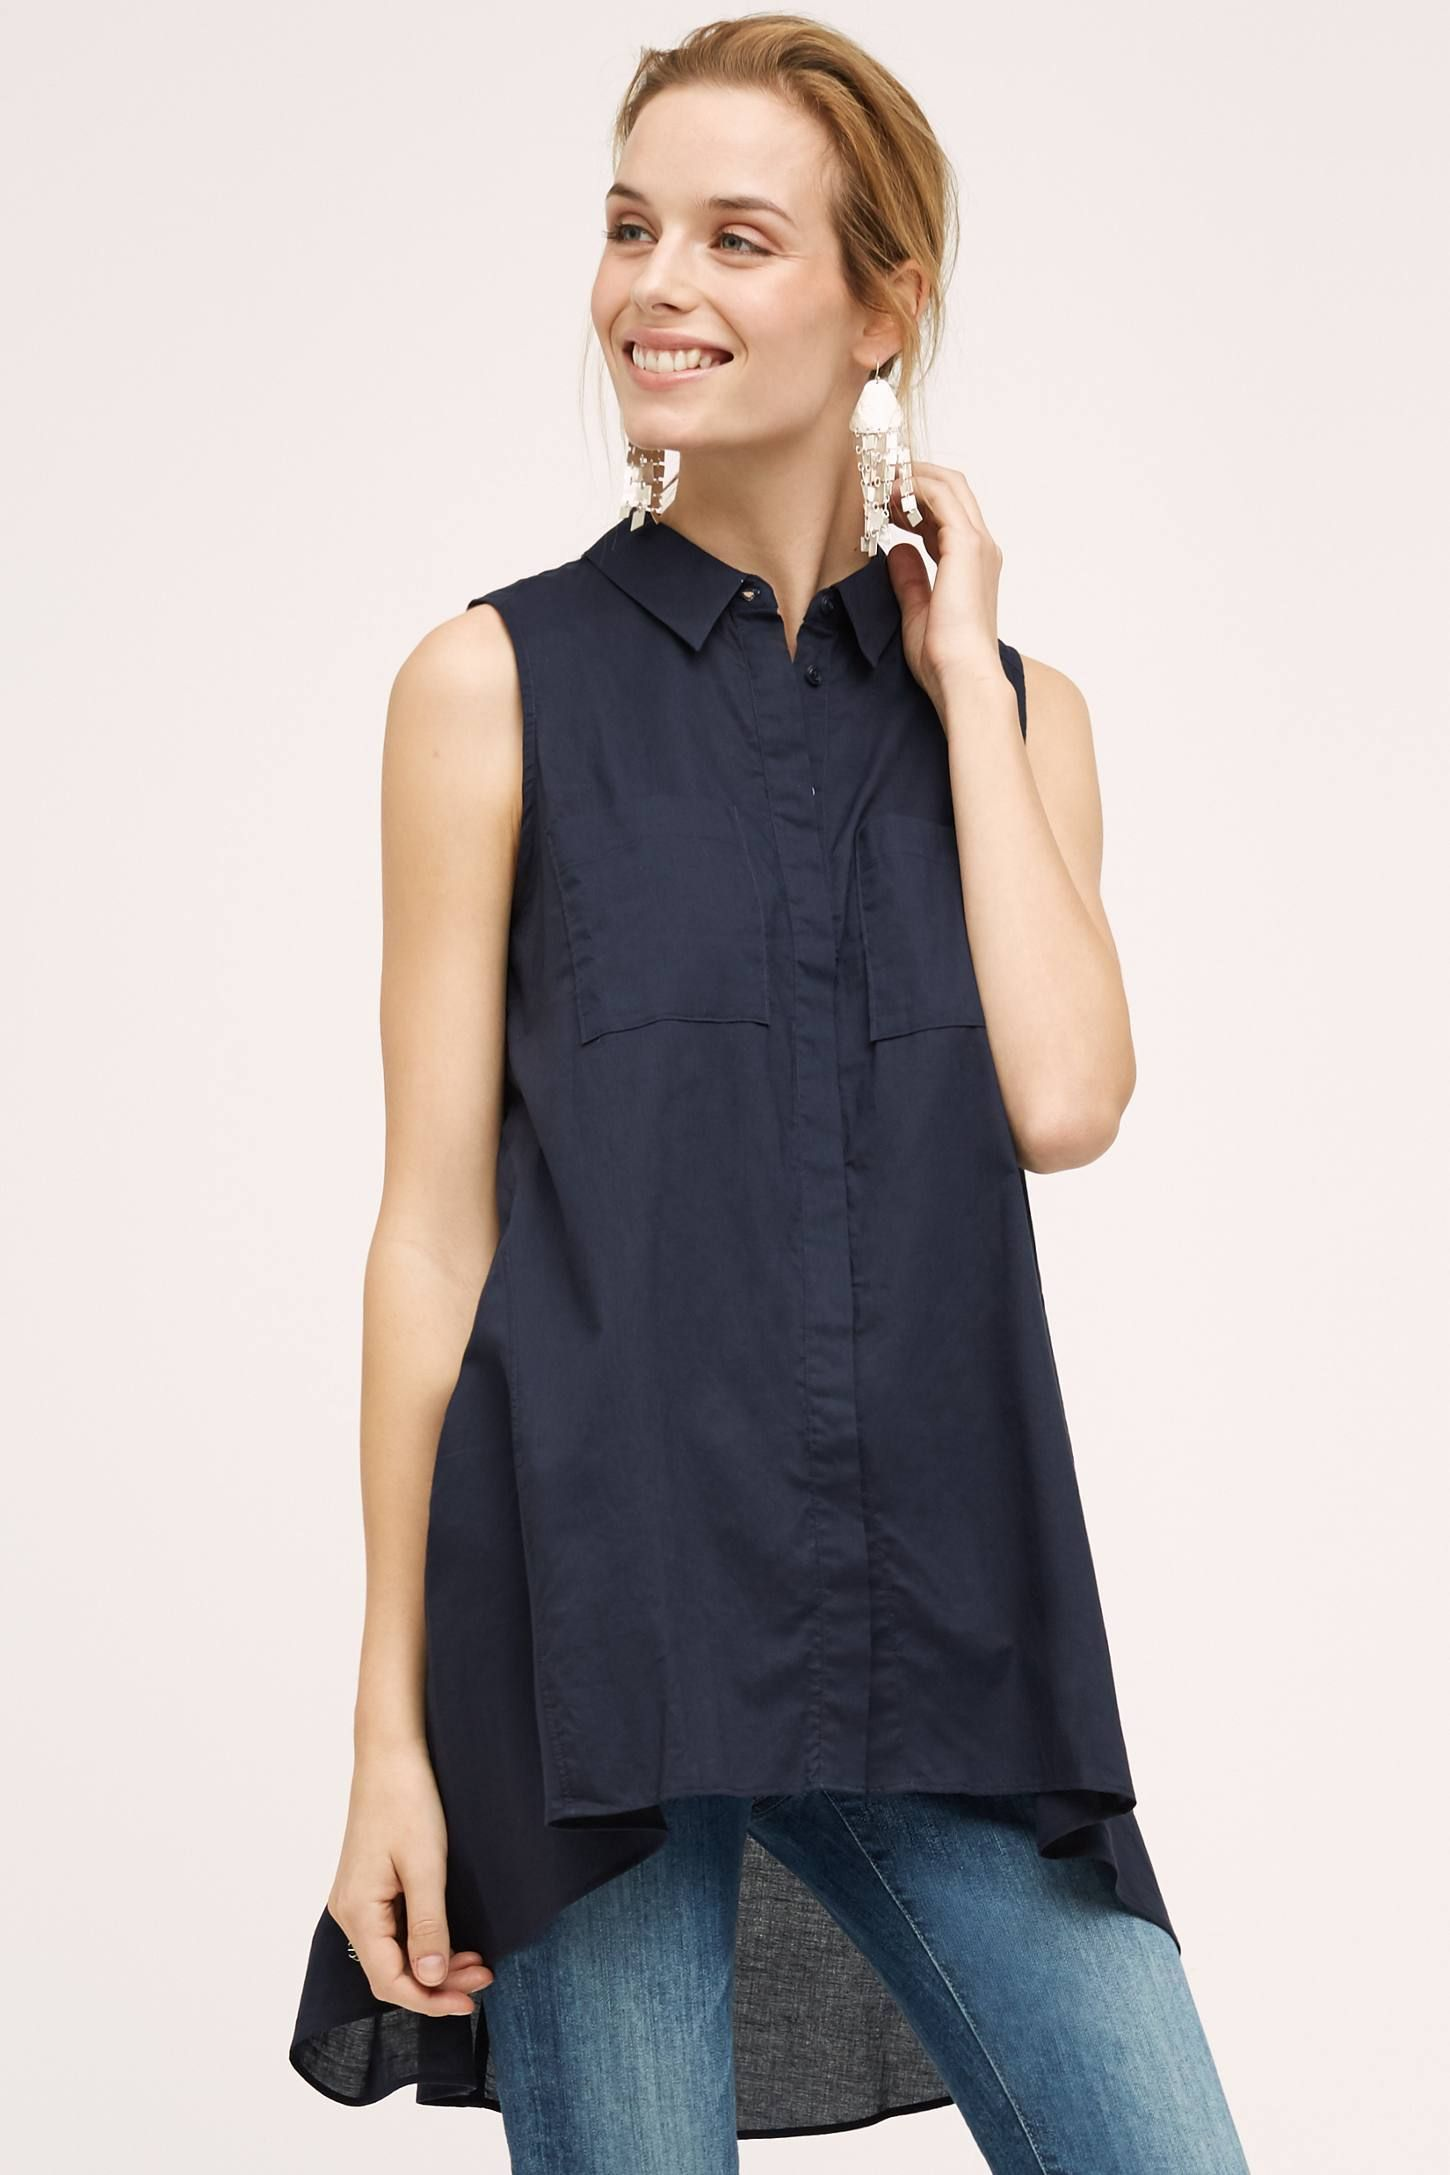 "<p>Camisa-túnica sin mangas de <a href=""http://rstyle.me/n/bs42yhb64xf%20"" target=""_blank"">Anthropologie</a>, 56,95 euros.</p>"